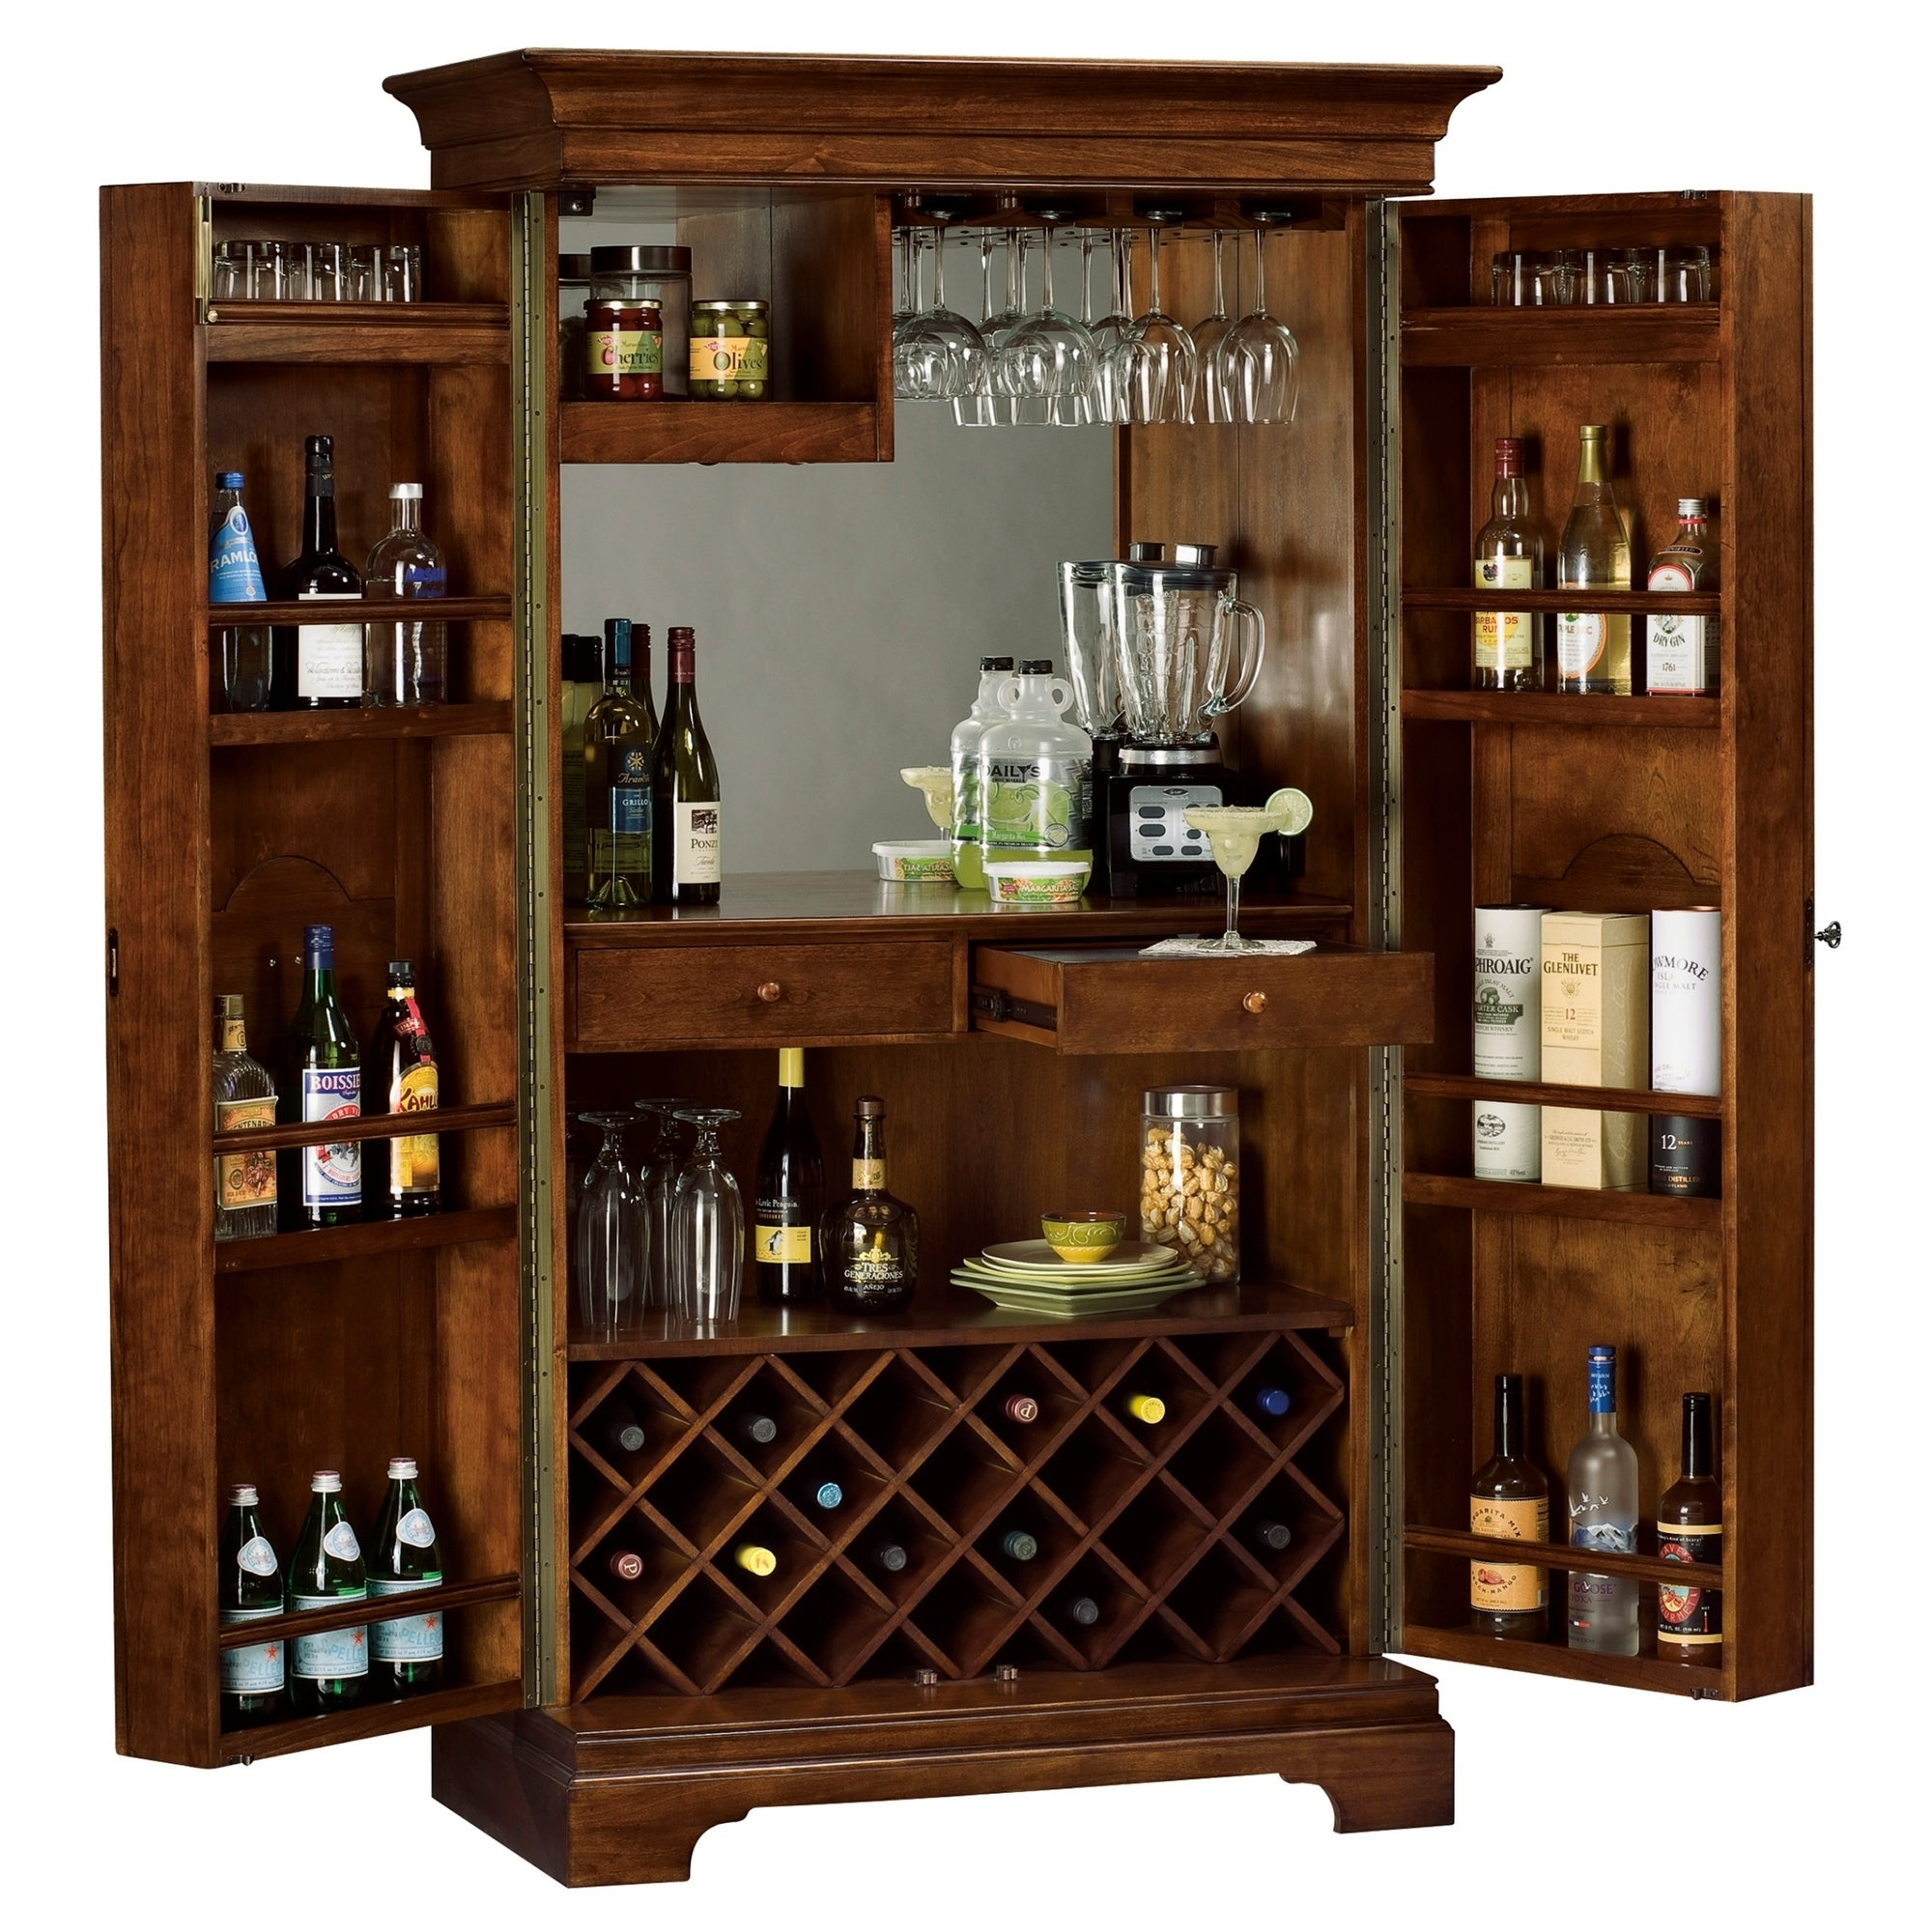 Genial Shop Howard Miller Barossa Valley Vintage, Elegant, And Chic Style, Foyer  Liquor Or Wine Cabinet, Occasional Storage Closet   Free Shipping Today ...